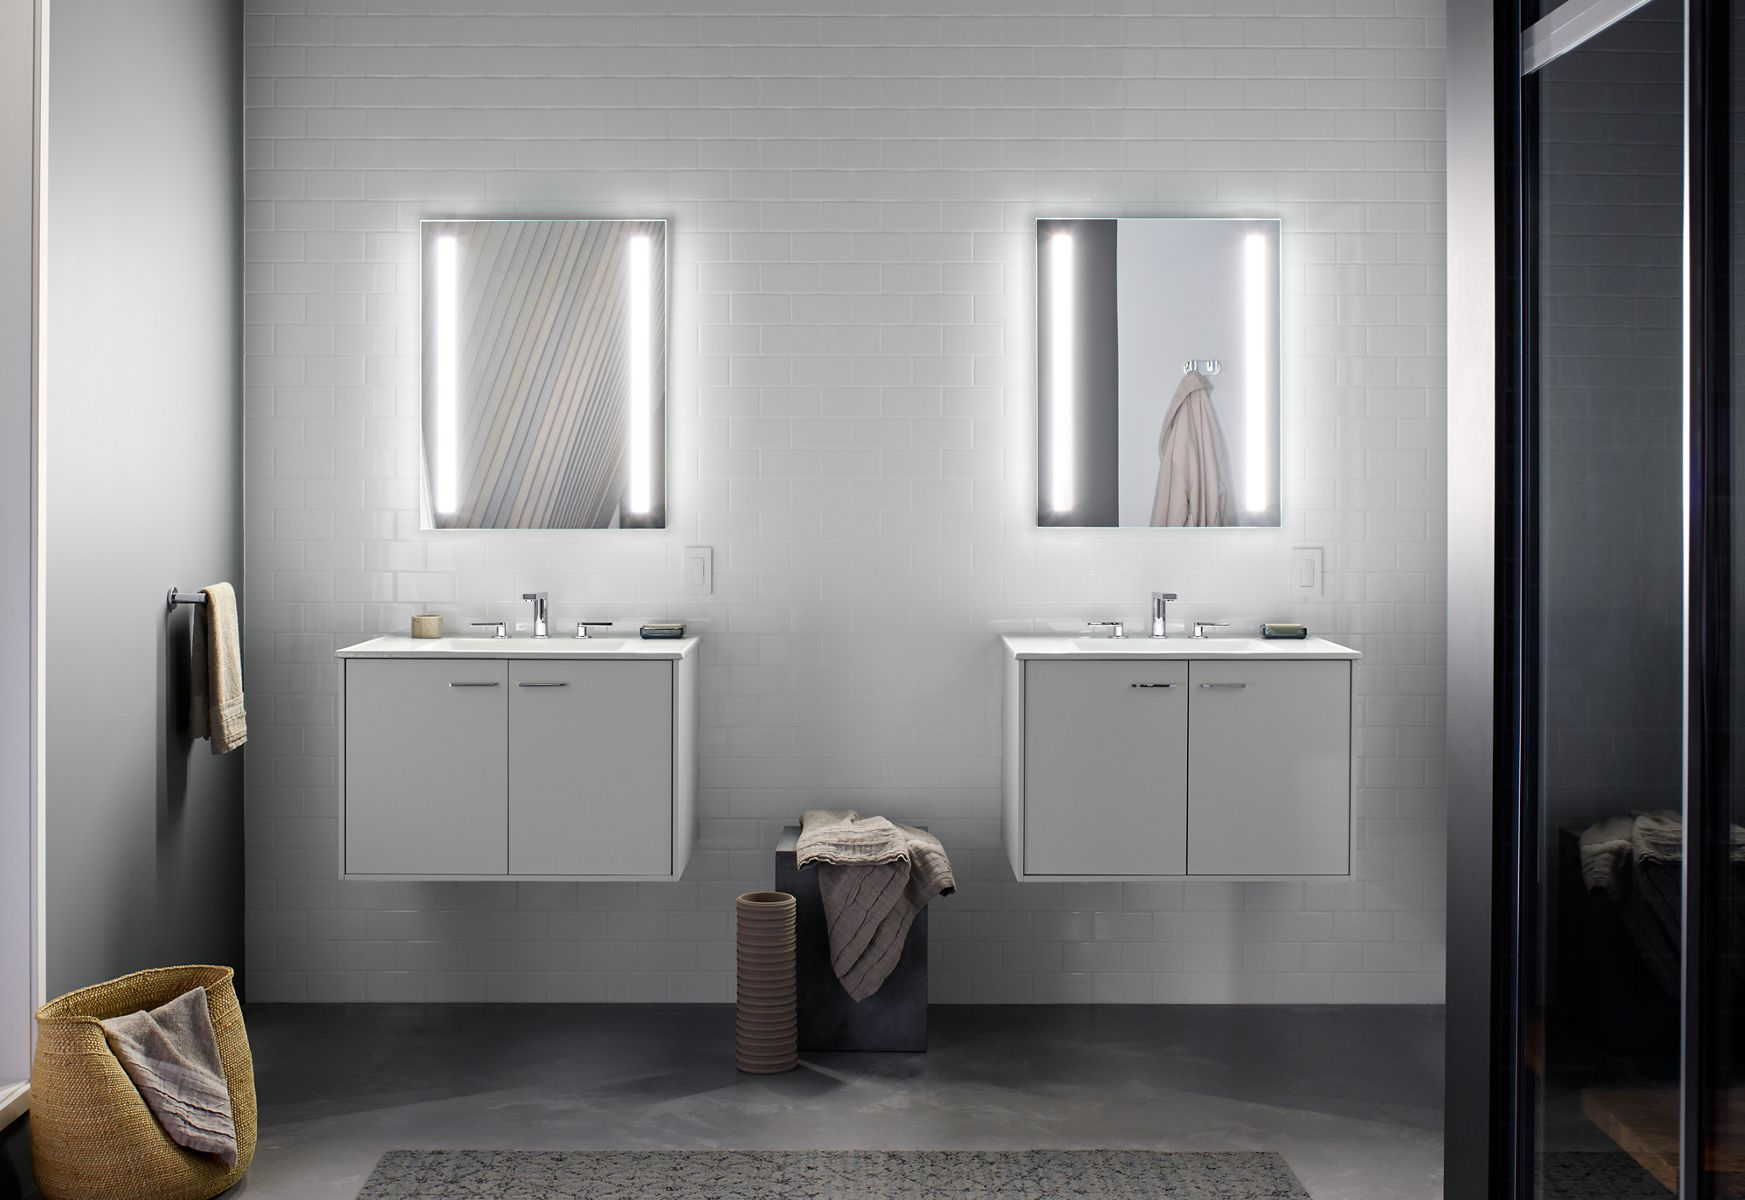 Beau Verdera® Lighted Mirrors U0026 Medicine Cabinets